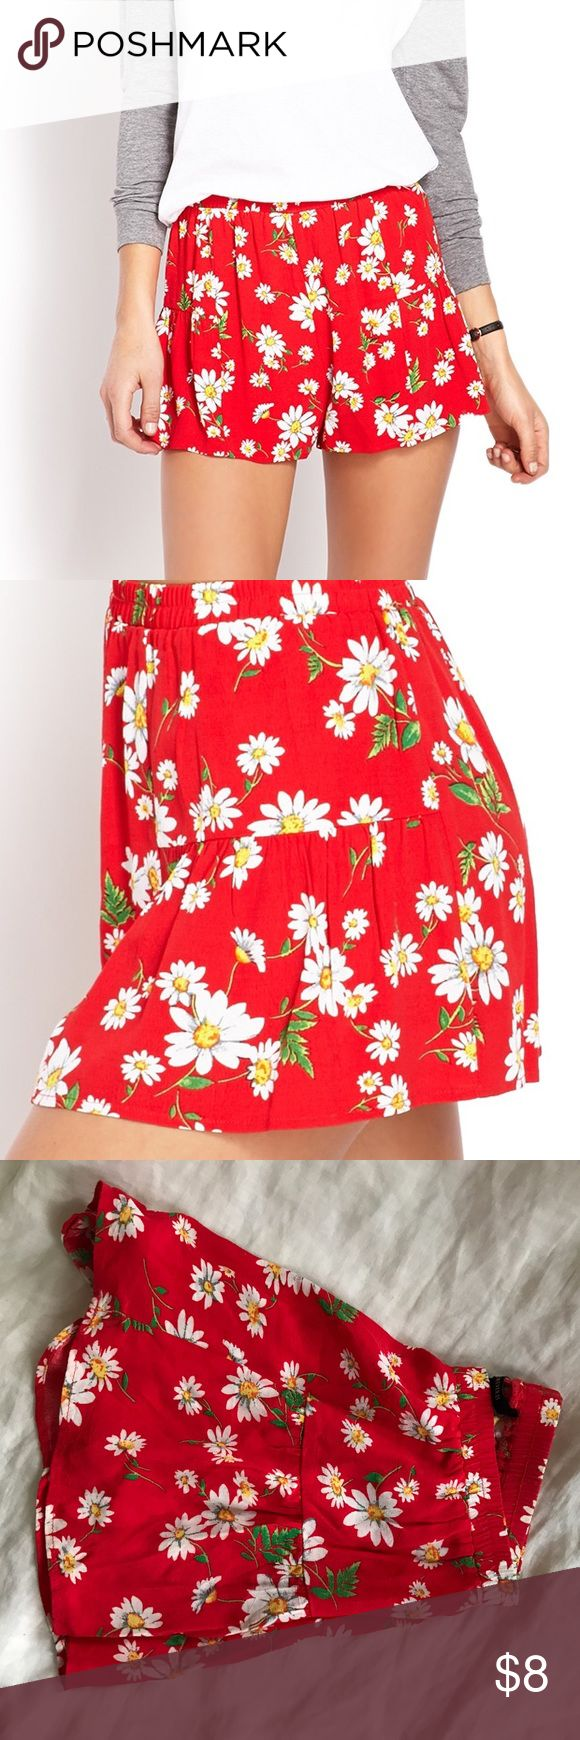 Red daisy shorts Worn only a few times, perfect condition! Says large but fits more like a medium. Forever 21 Shorts